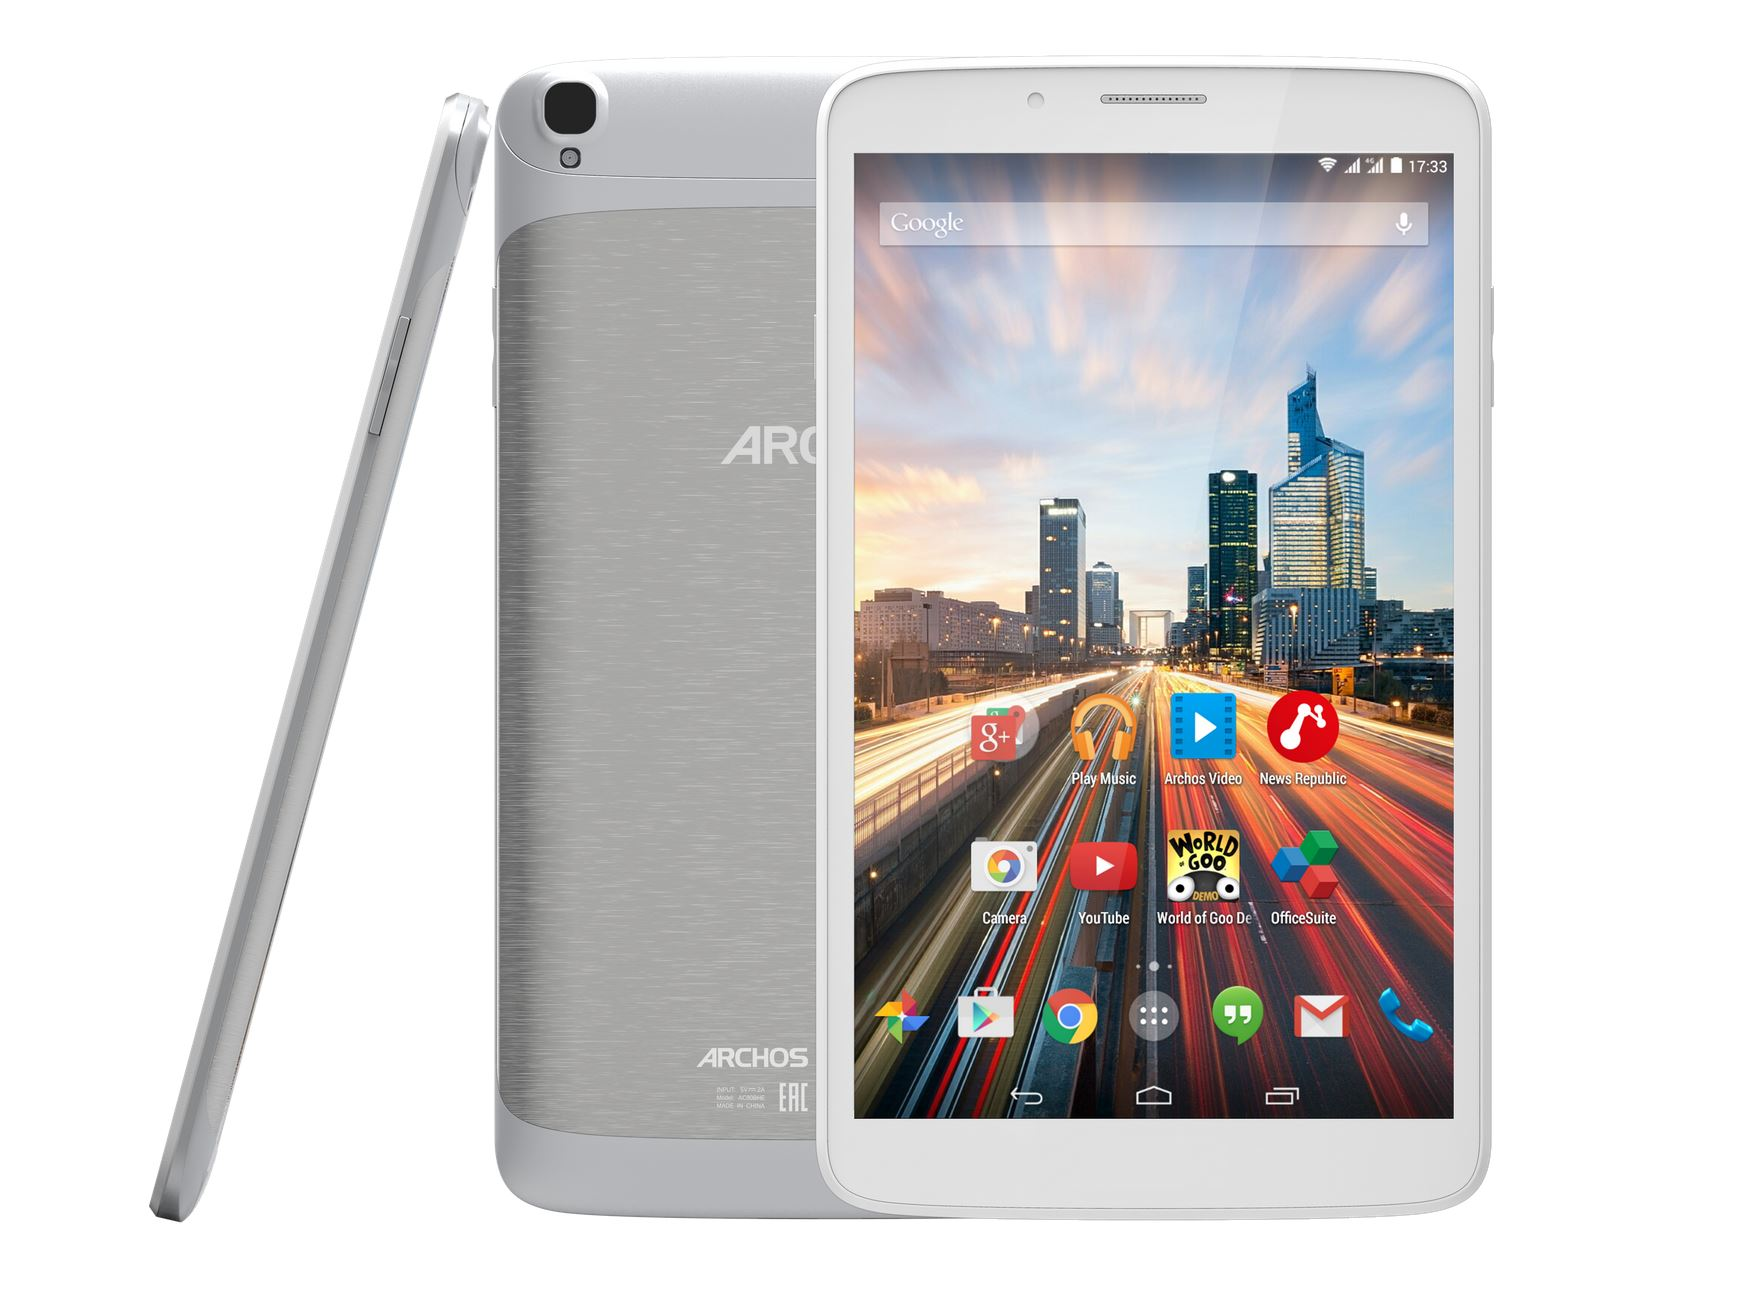 Android Archos CES2015 tablet